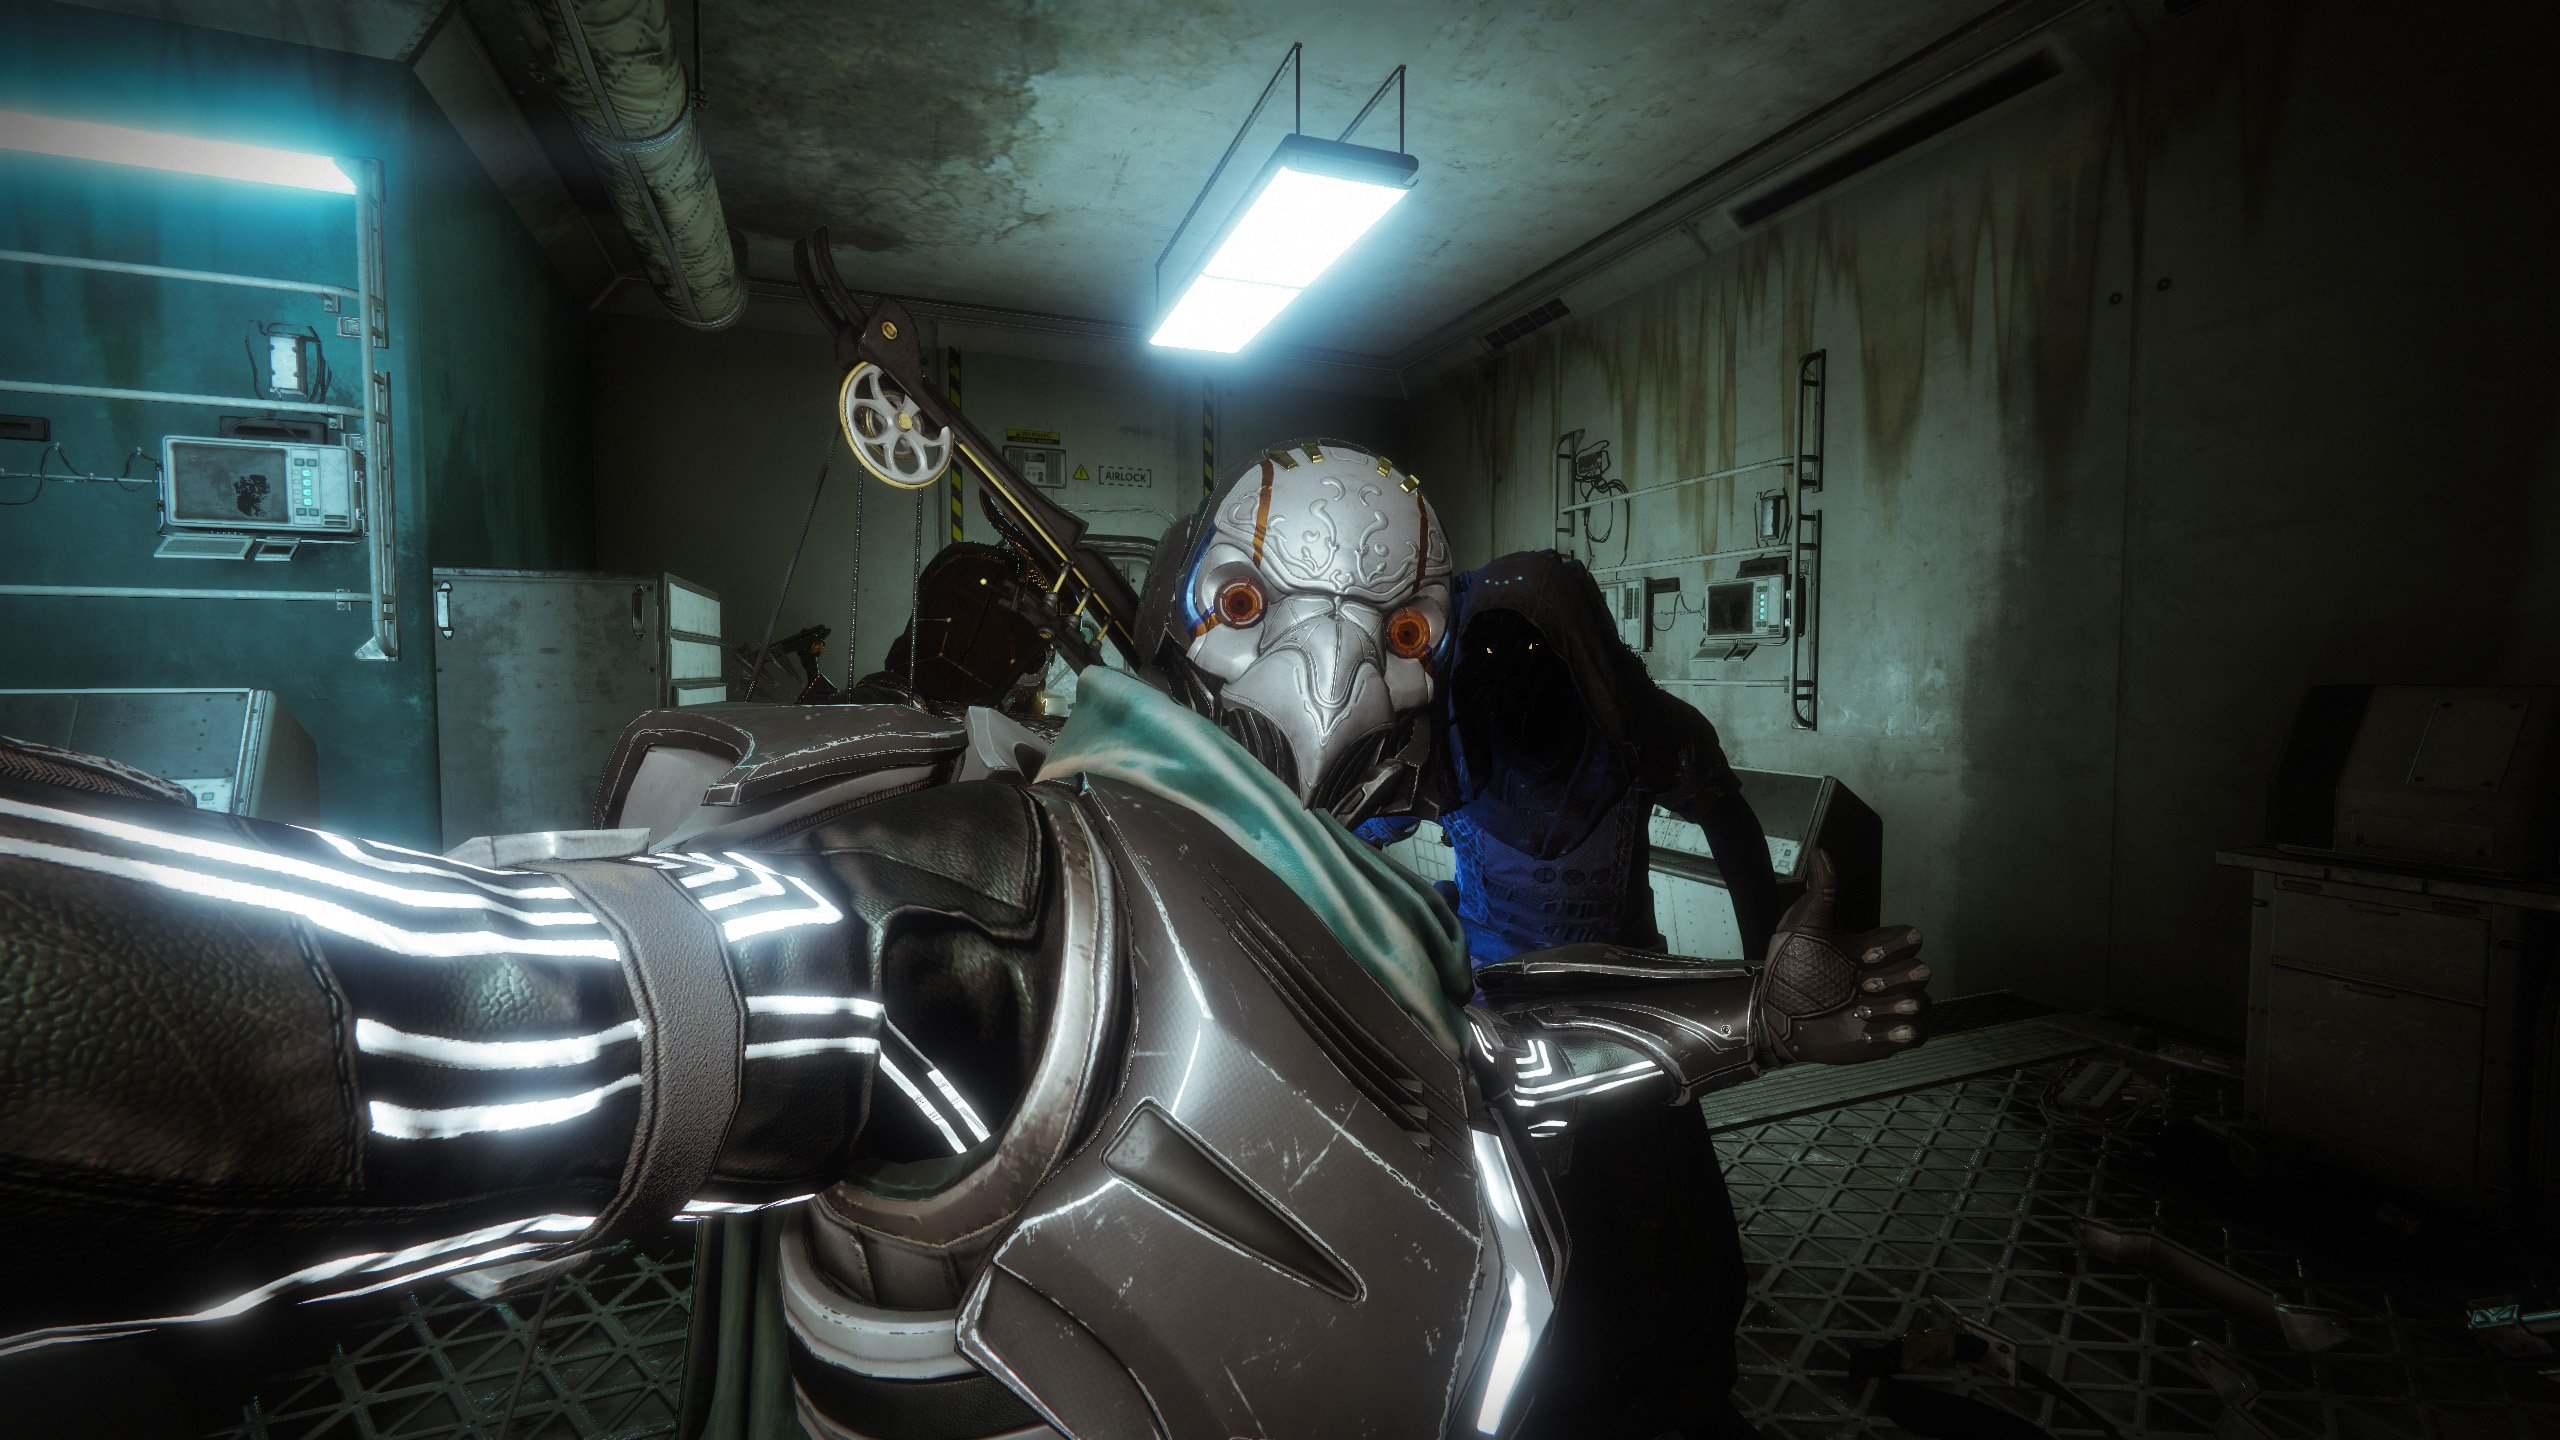 xur location destiny 2 today 2020